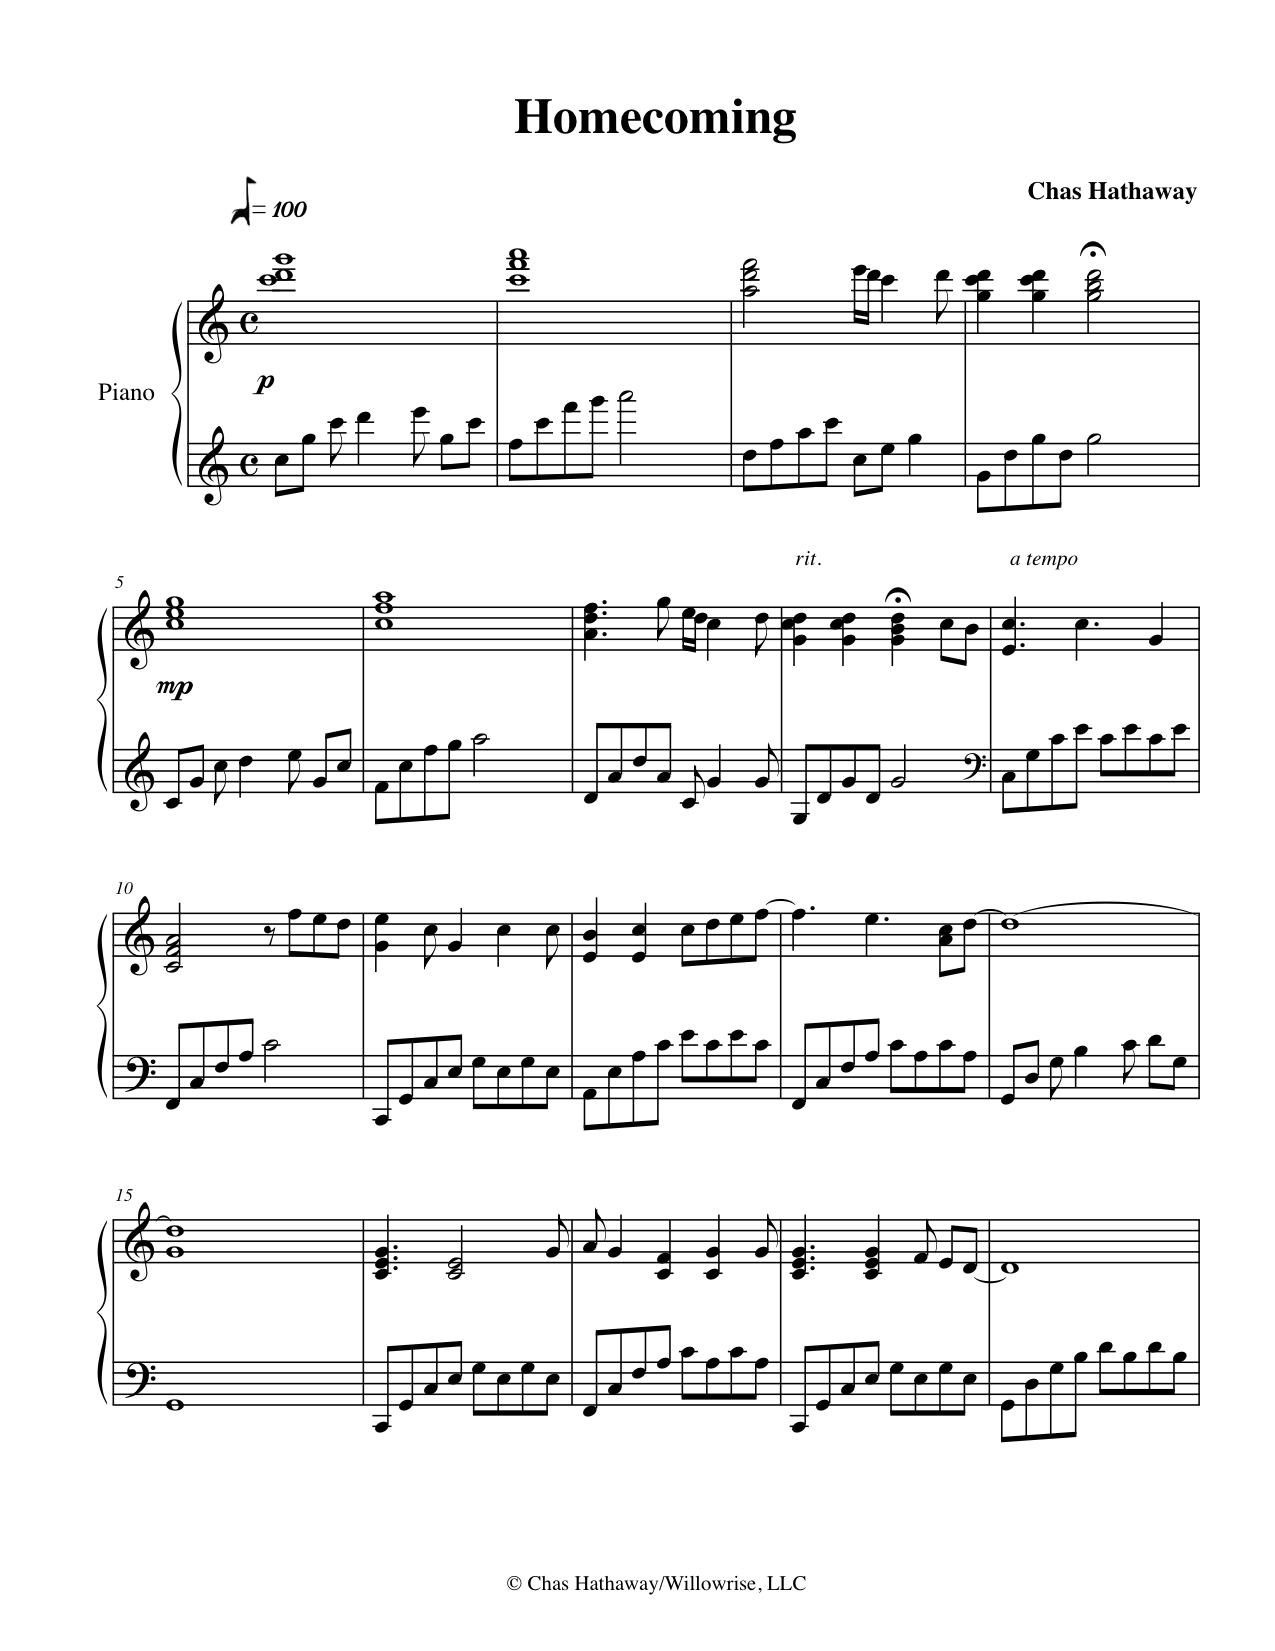 Homecoming Sheet Music by Chas Hathaway